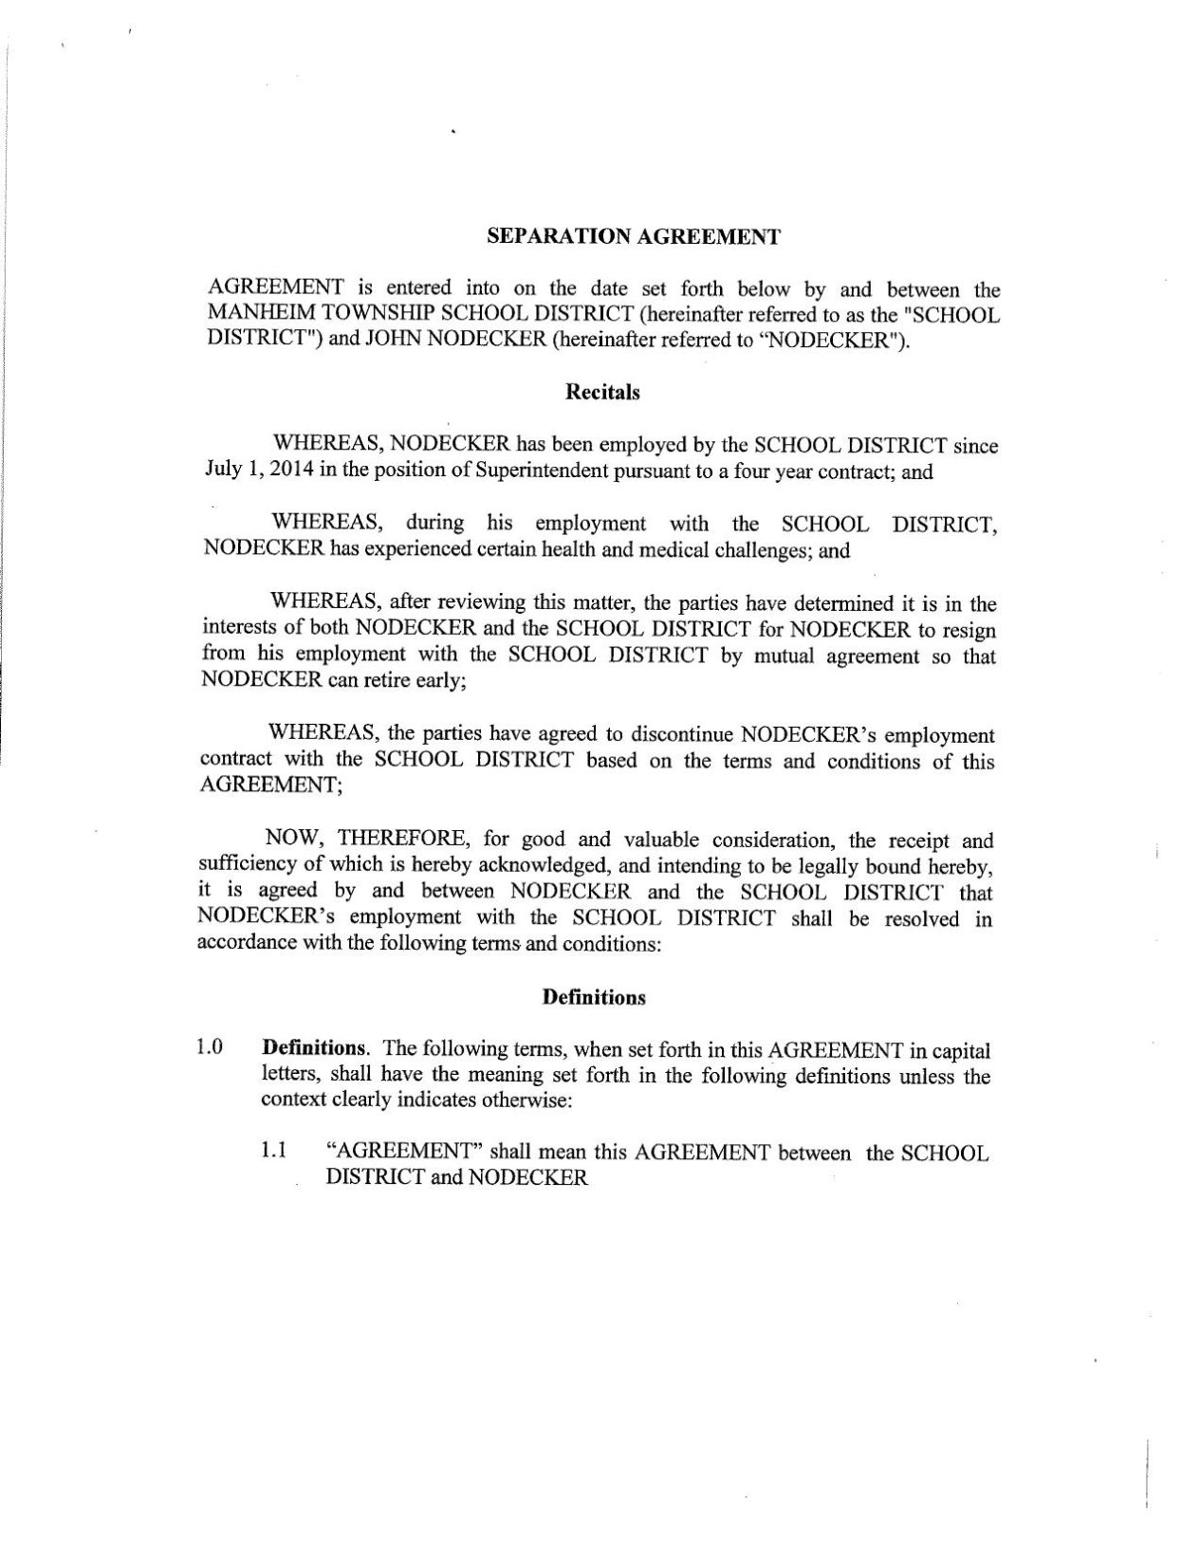 Manheim Township School District Separation Agreement With